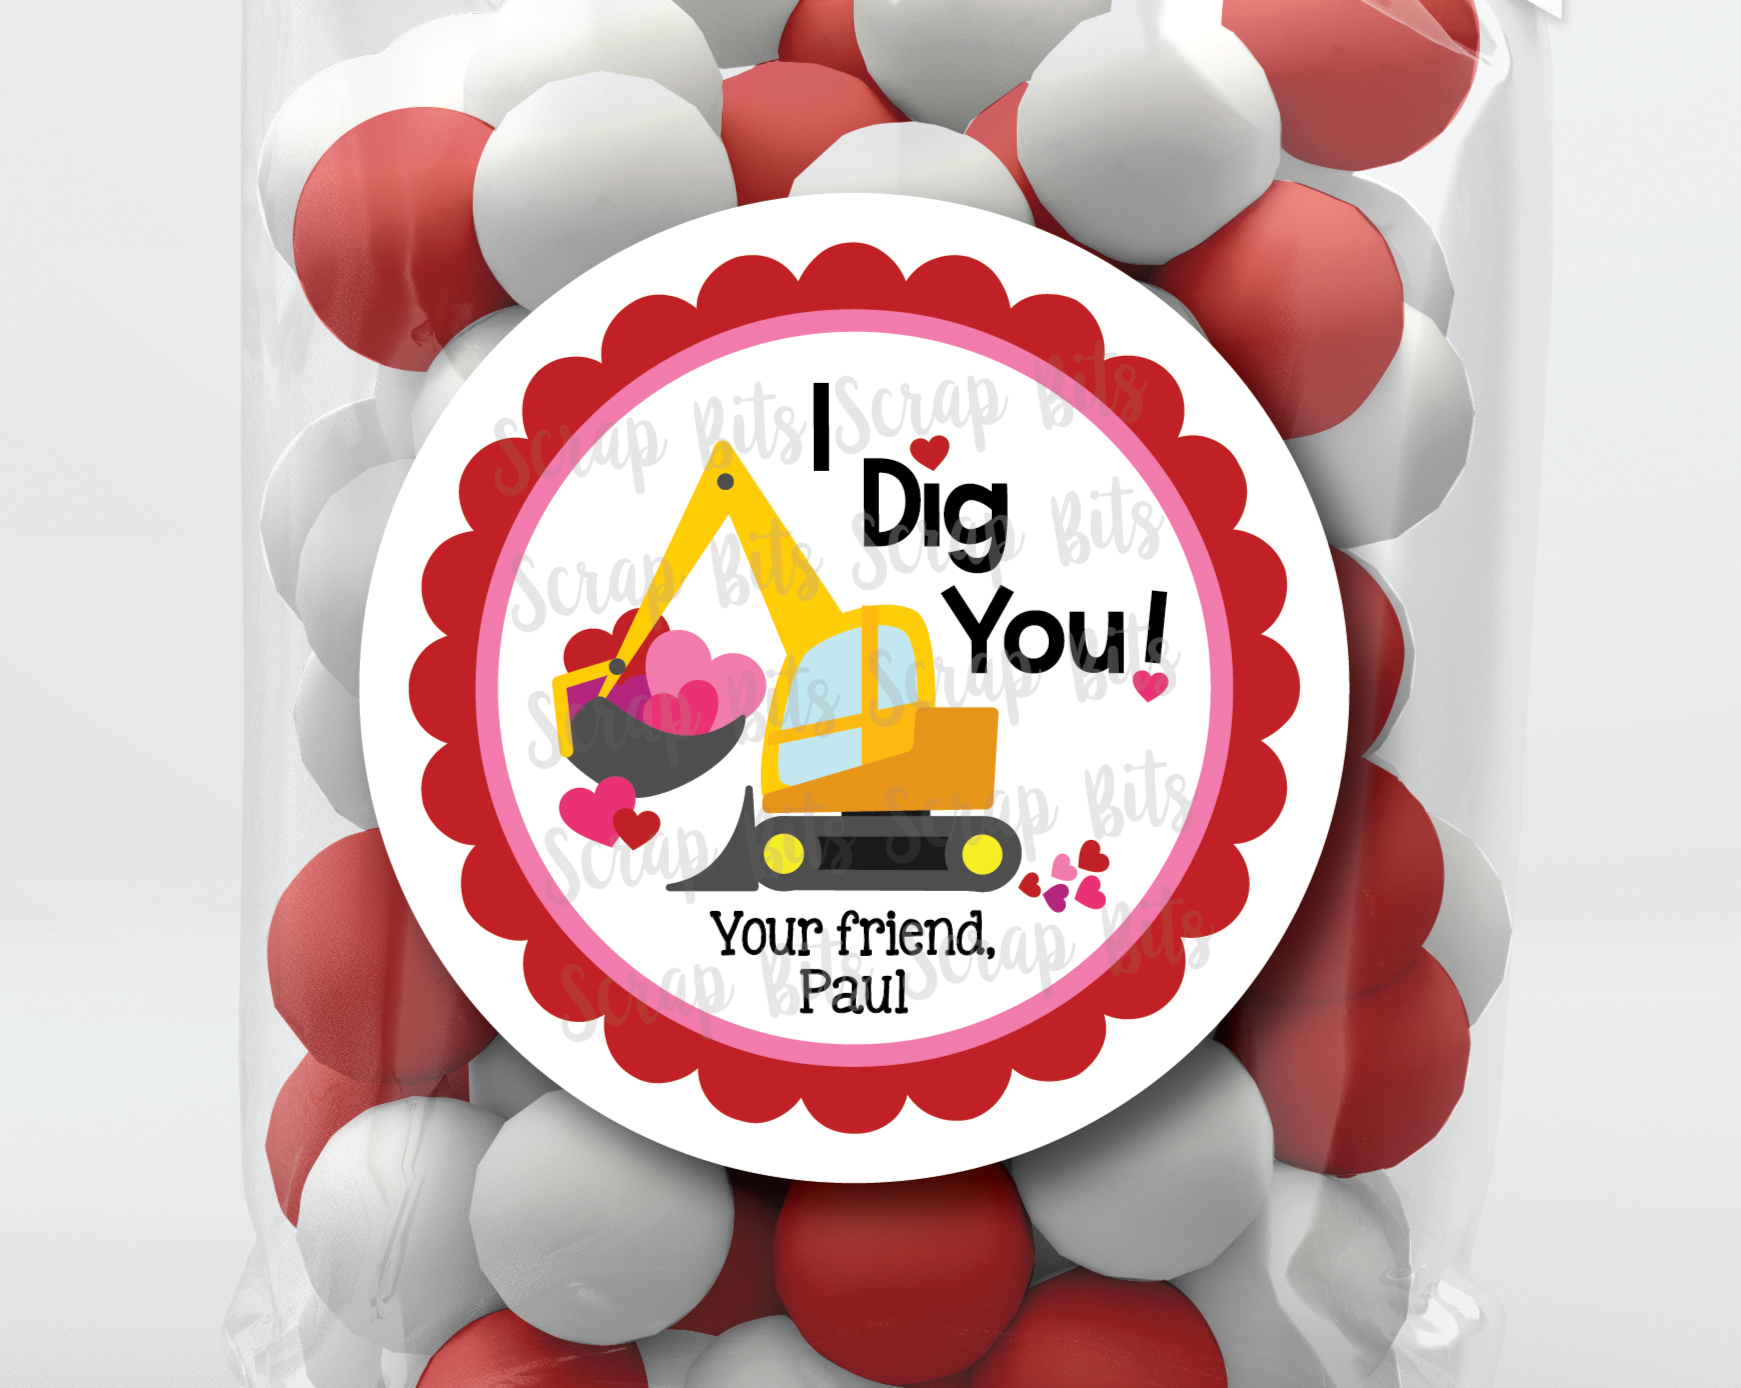 I Dig You Valentines, Construction . Valentine's Day Stickers or Tags